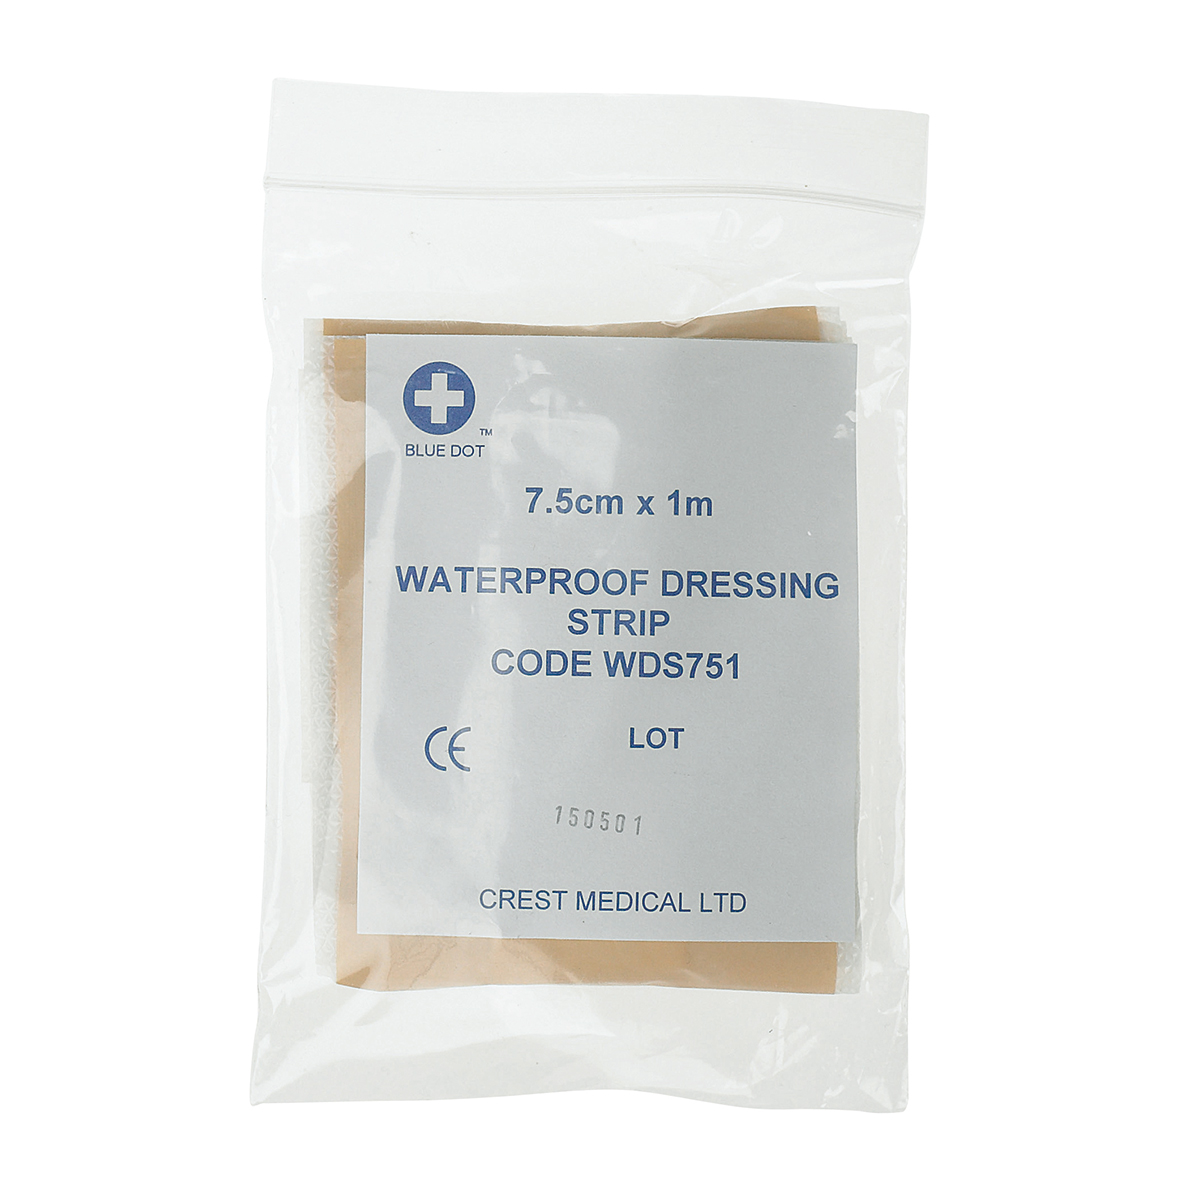 7.5cm x 1m Waterproof Plaster Dressing Strip